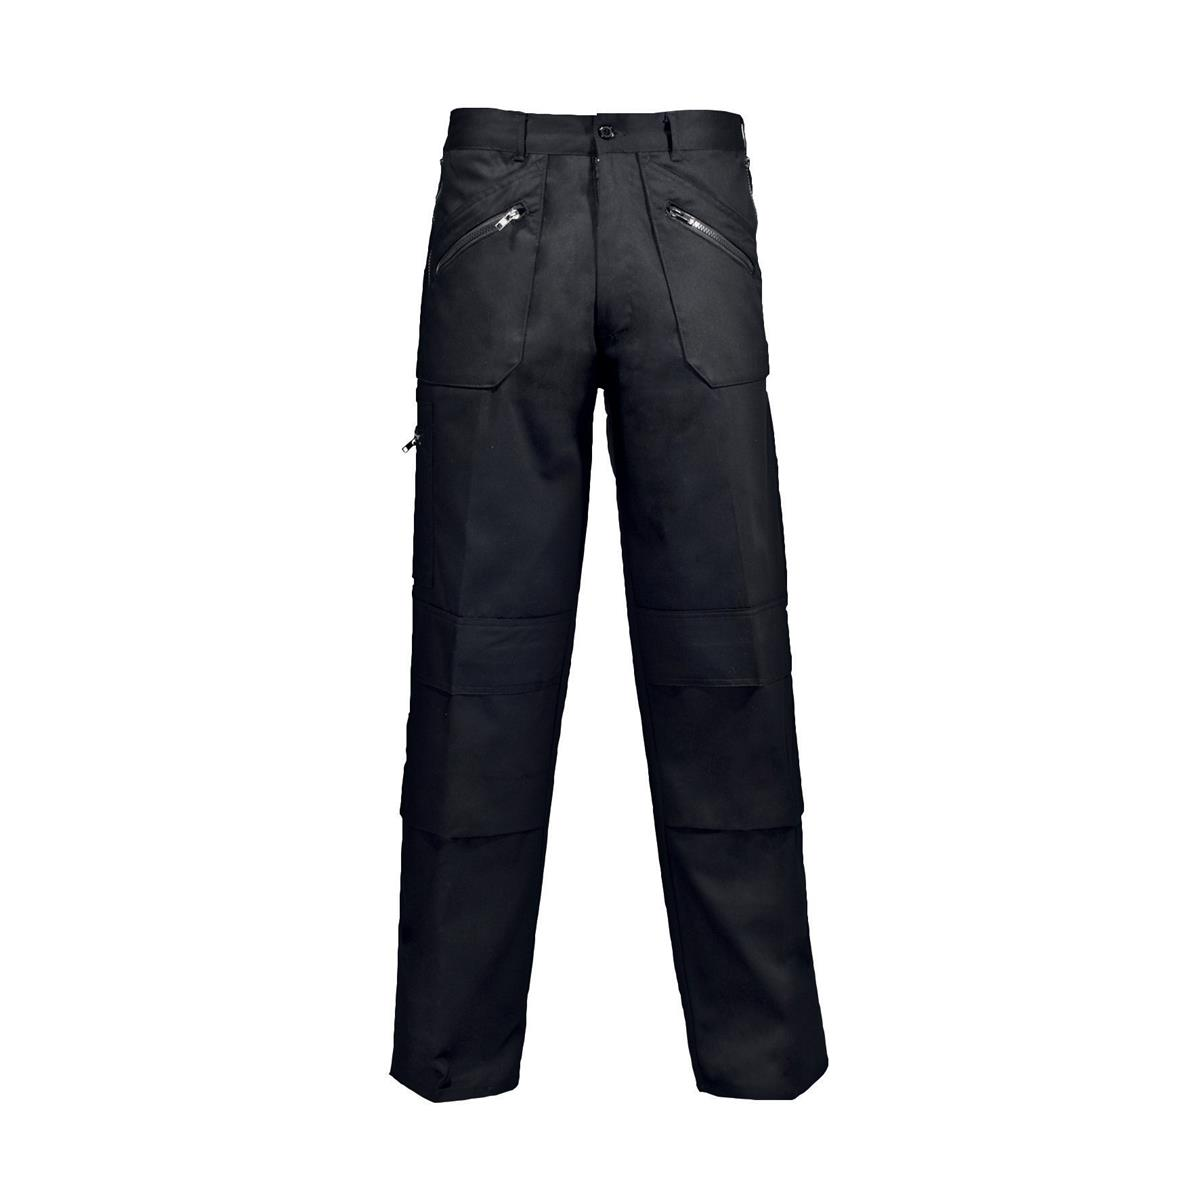 ST Action Trousers Poly Cotton Zipped Pockets Regular 40inch Blk Ref 18FA7 *Approx 3 Day Leadtime*